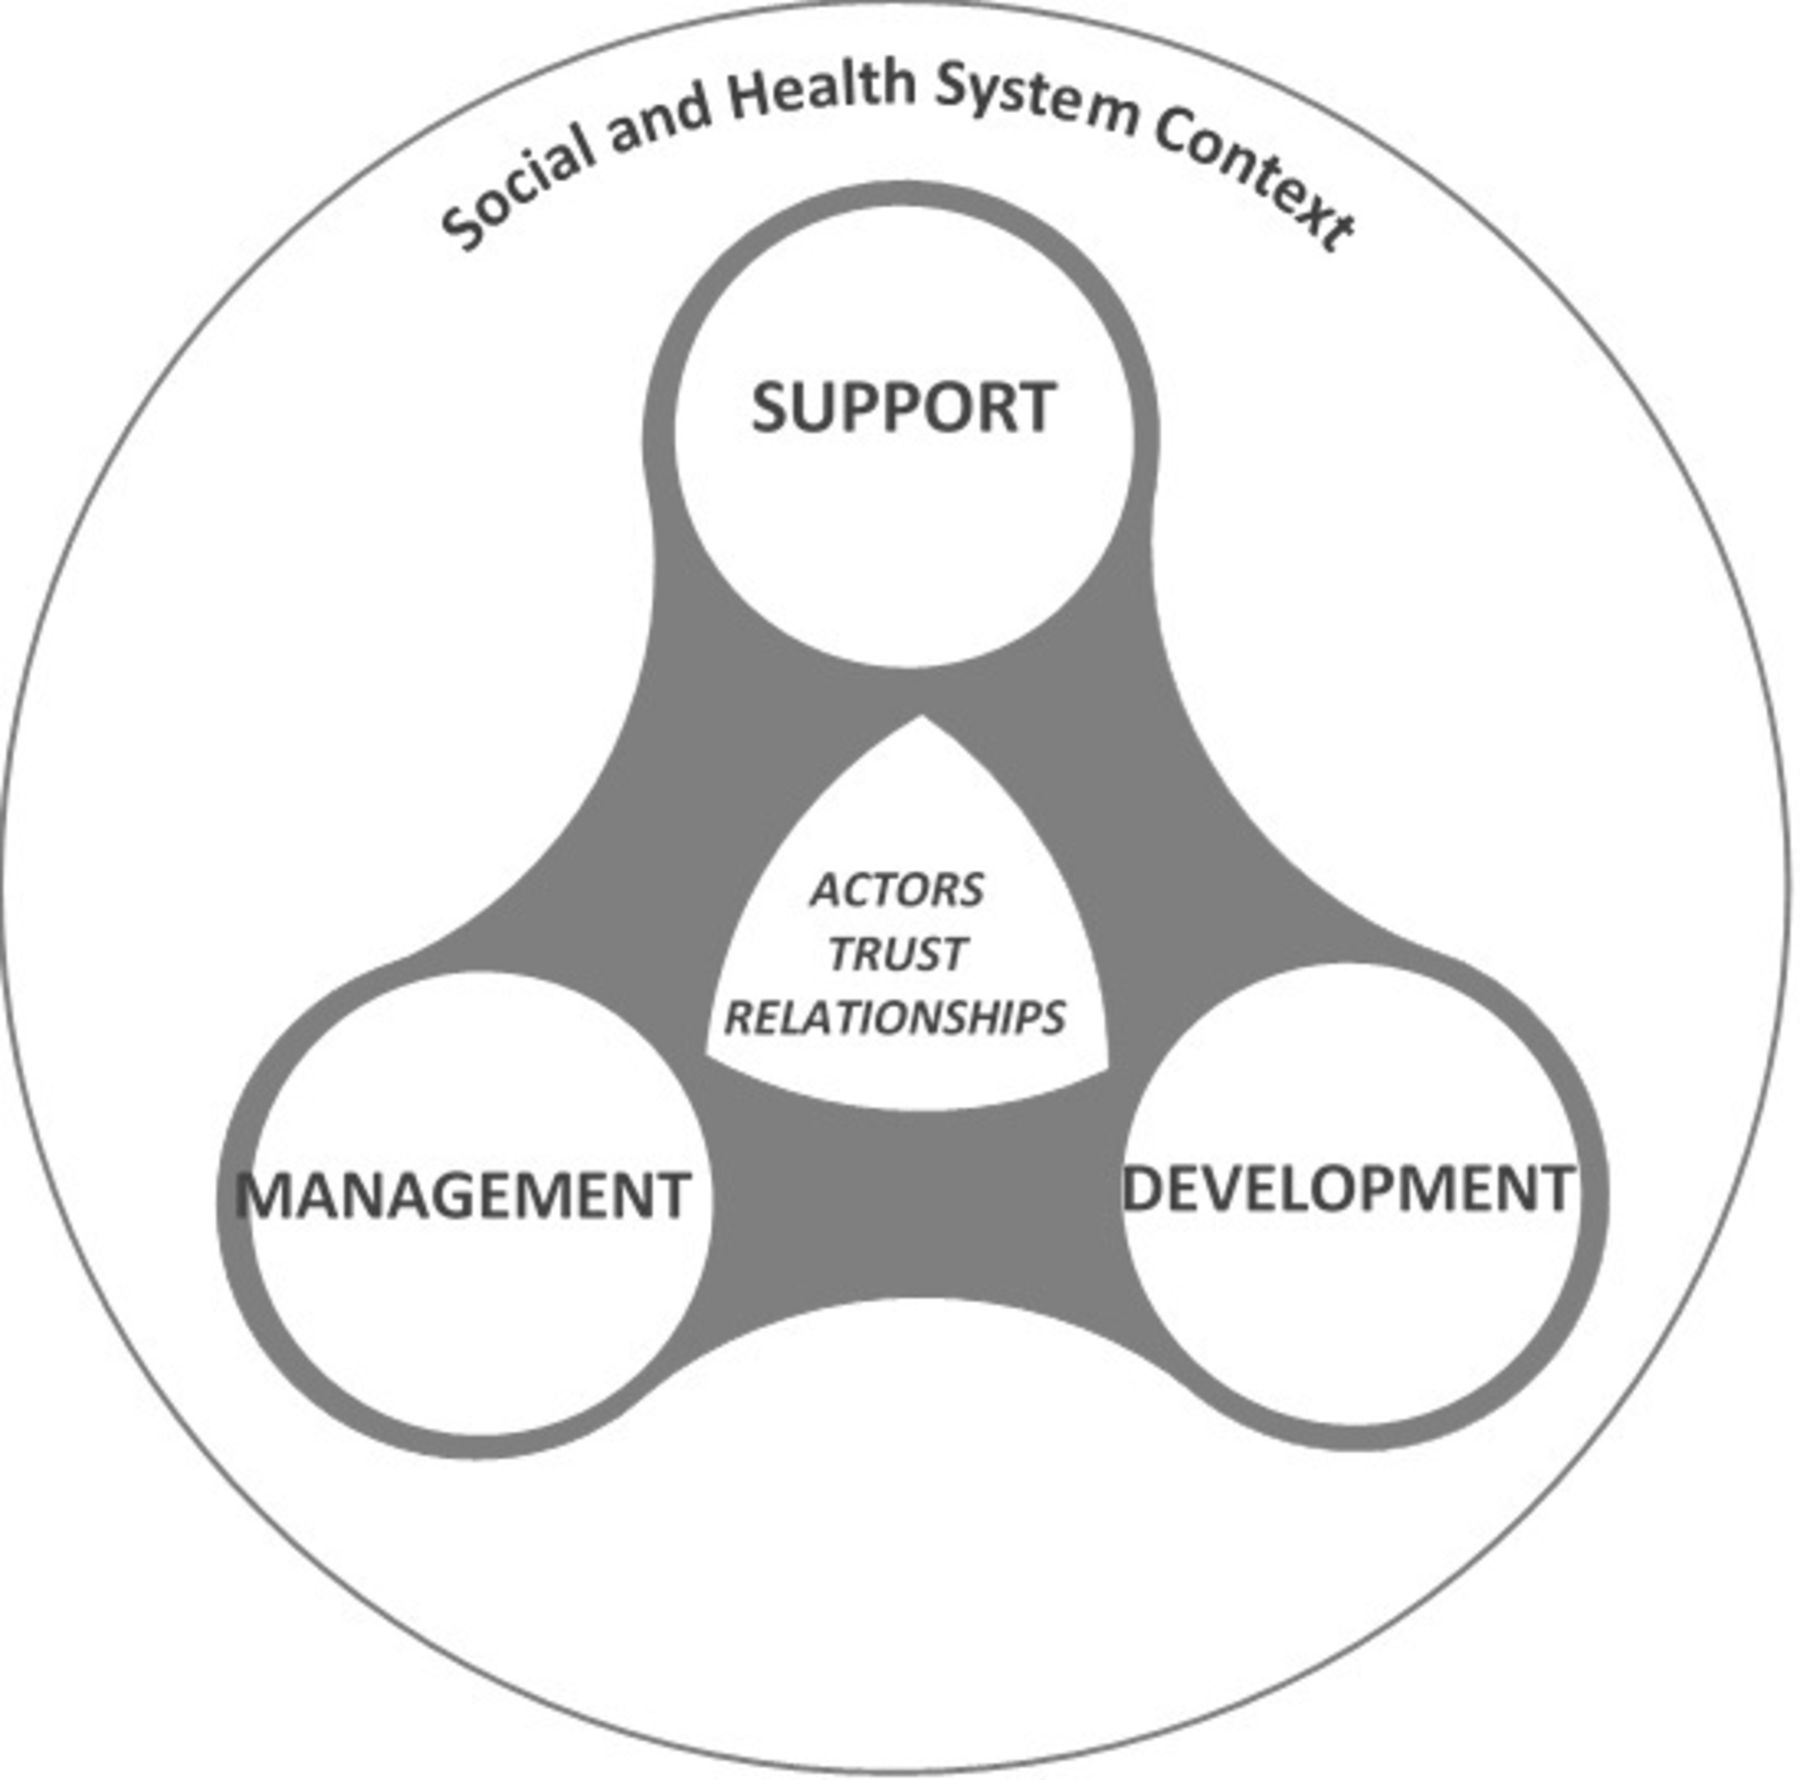 The supervisory relationships of community health workers